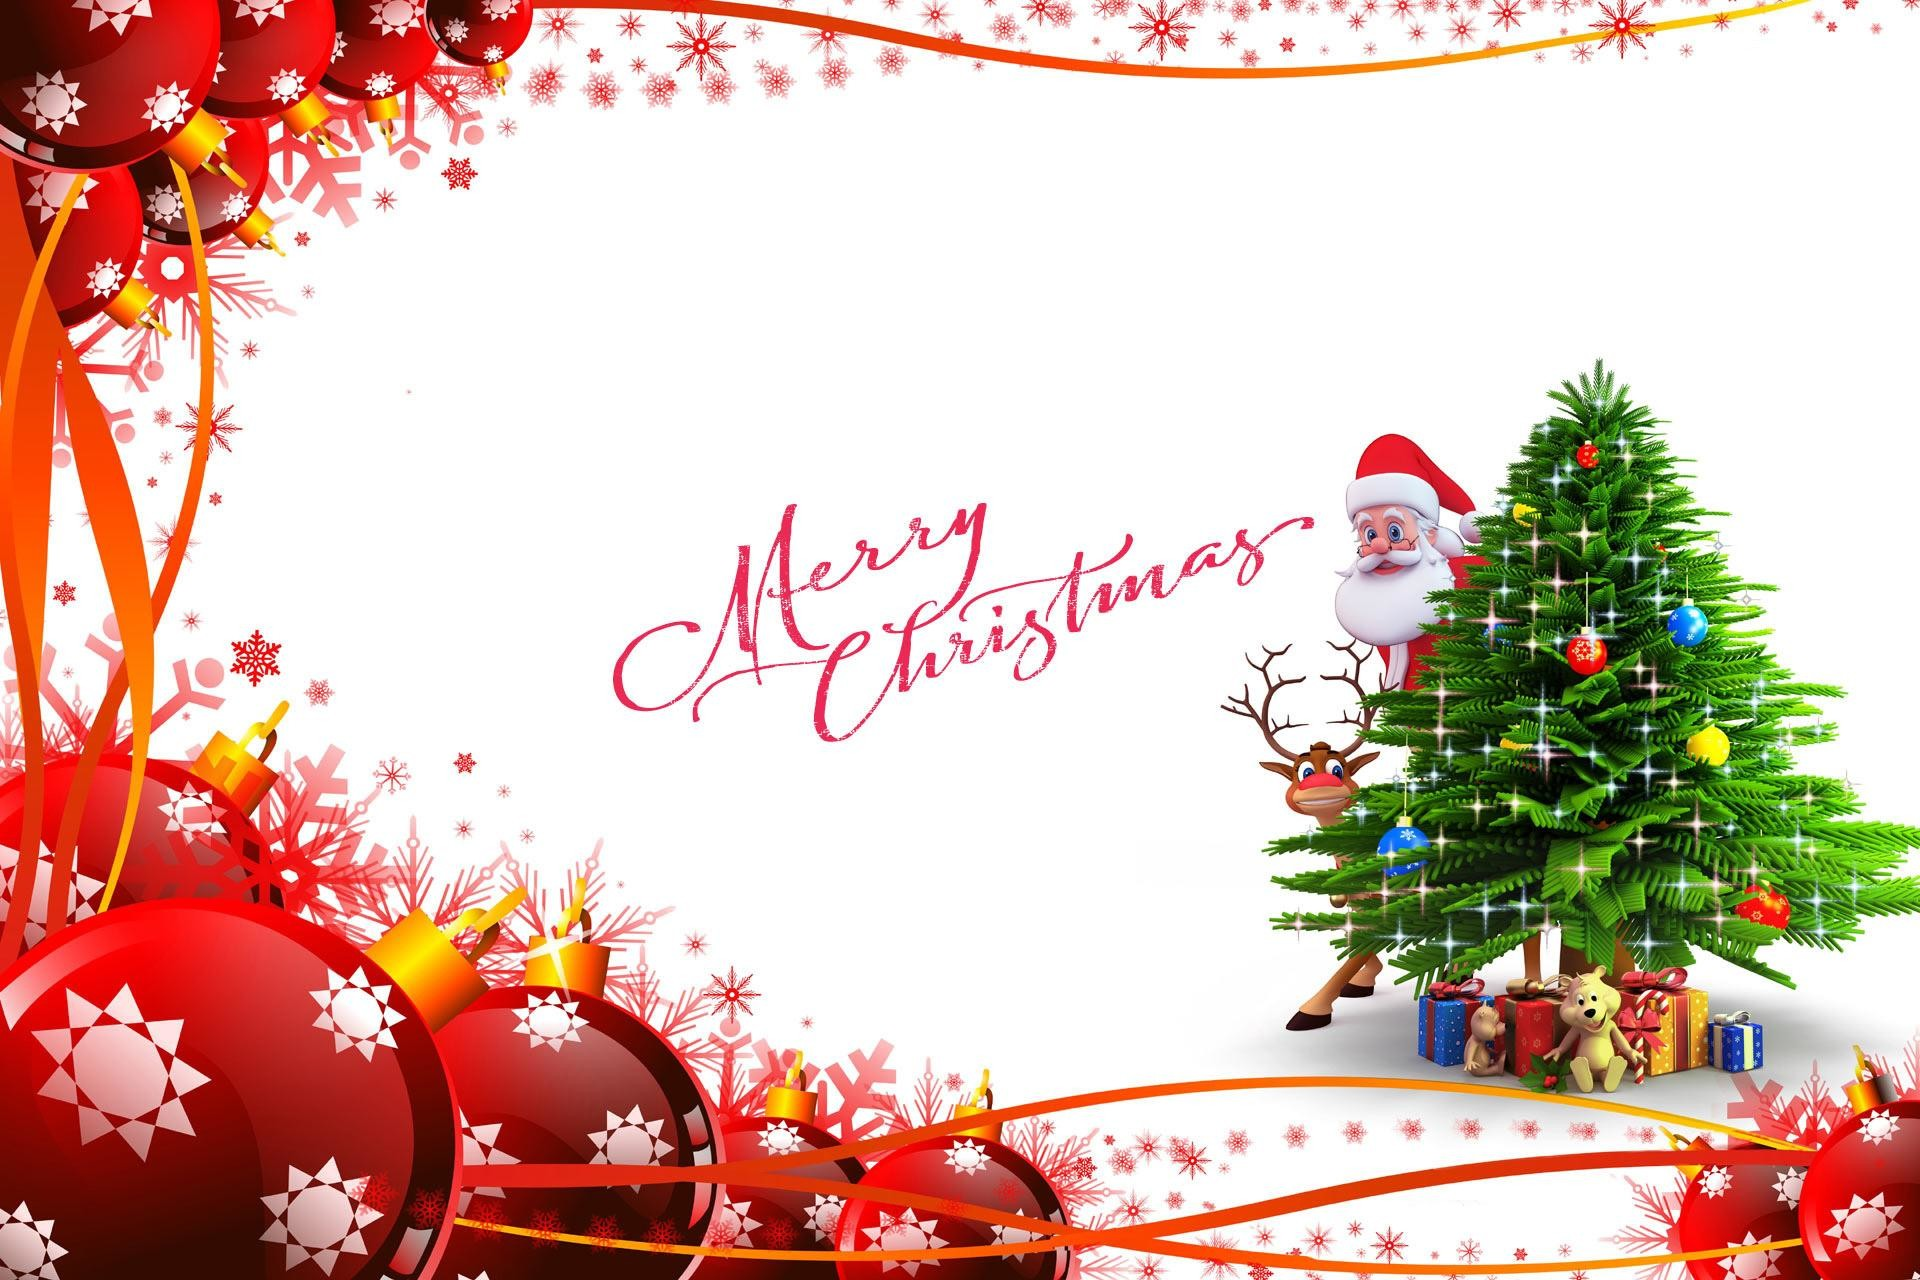 Merry Christmas: Animated Images, Gifs, Pictures Animations Merry christmas display pictures for bbm